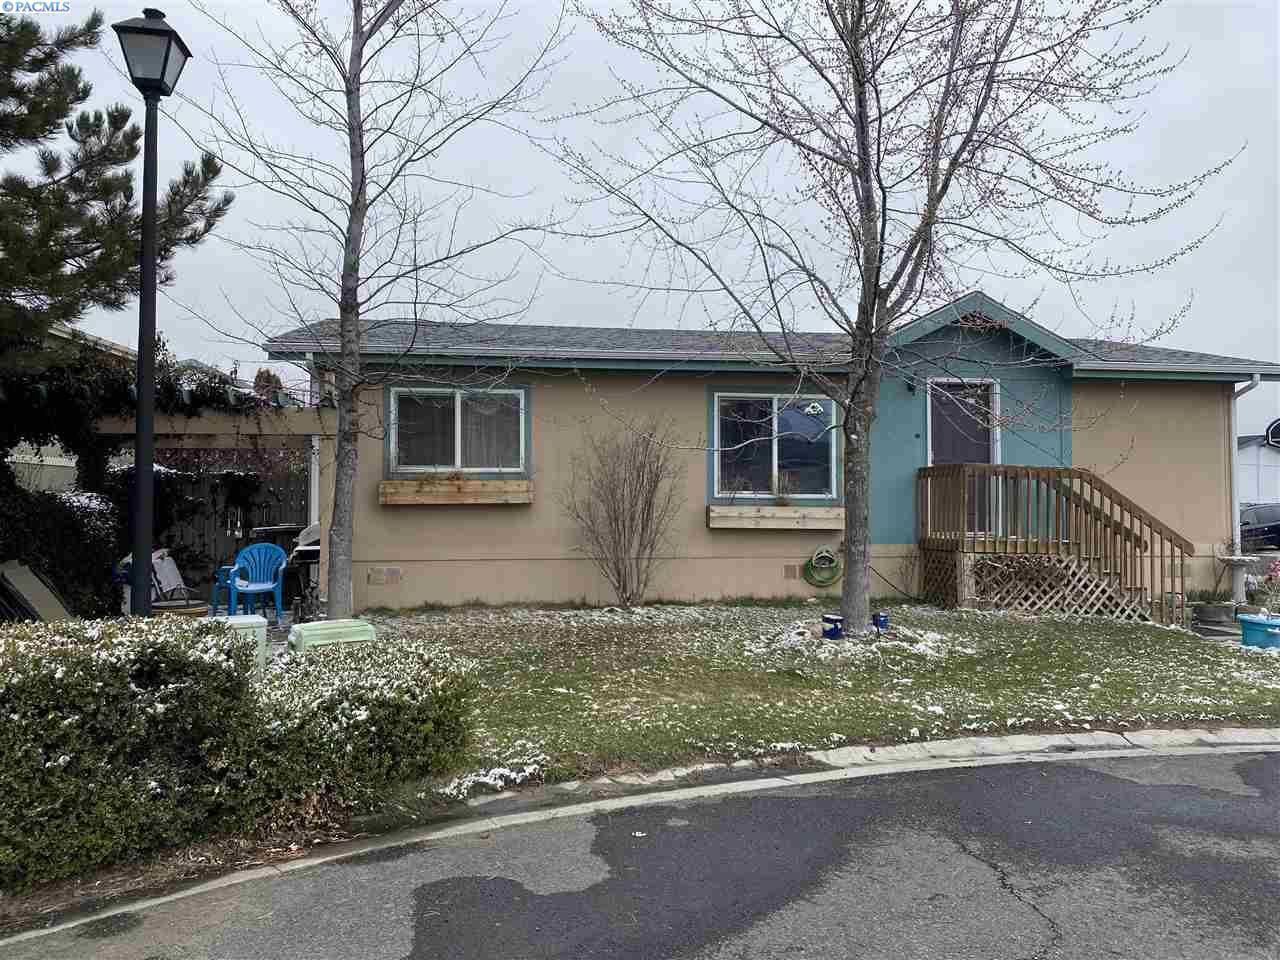 Photo of 255 NW Golden Hills #15, Pullman, WA 99163 (MLS # 244378)